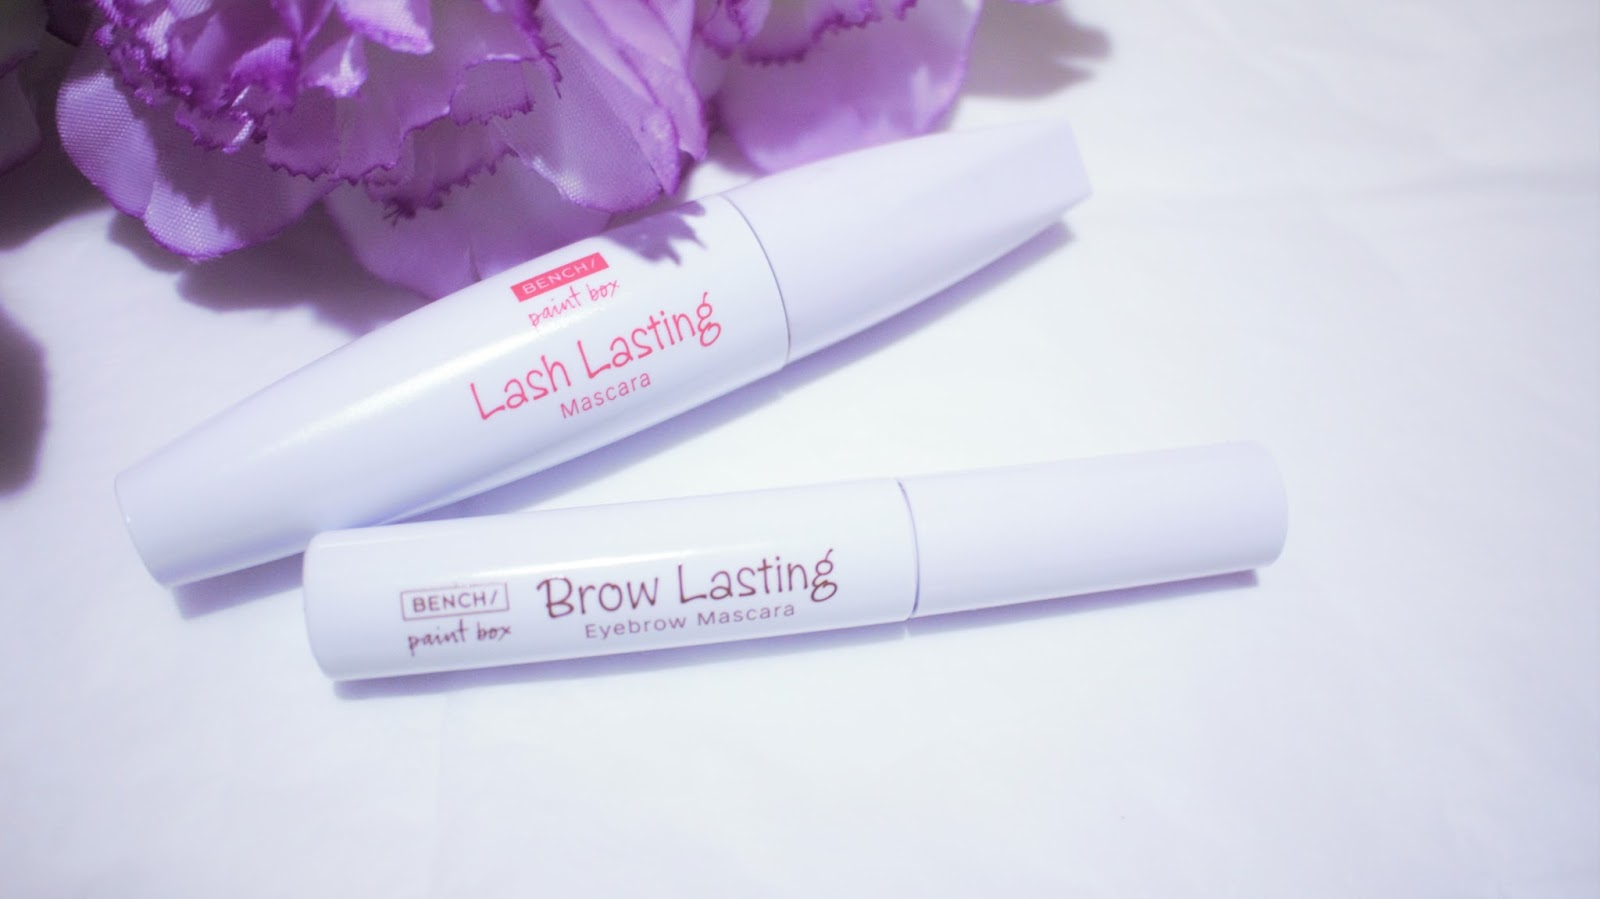 SOMETHING NEW | Brow Lasting Mascara and Lash Lasting from